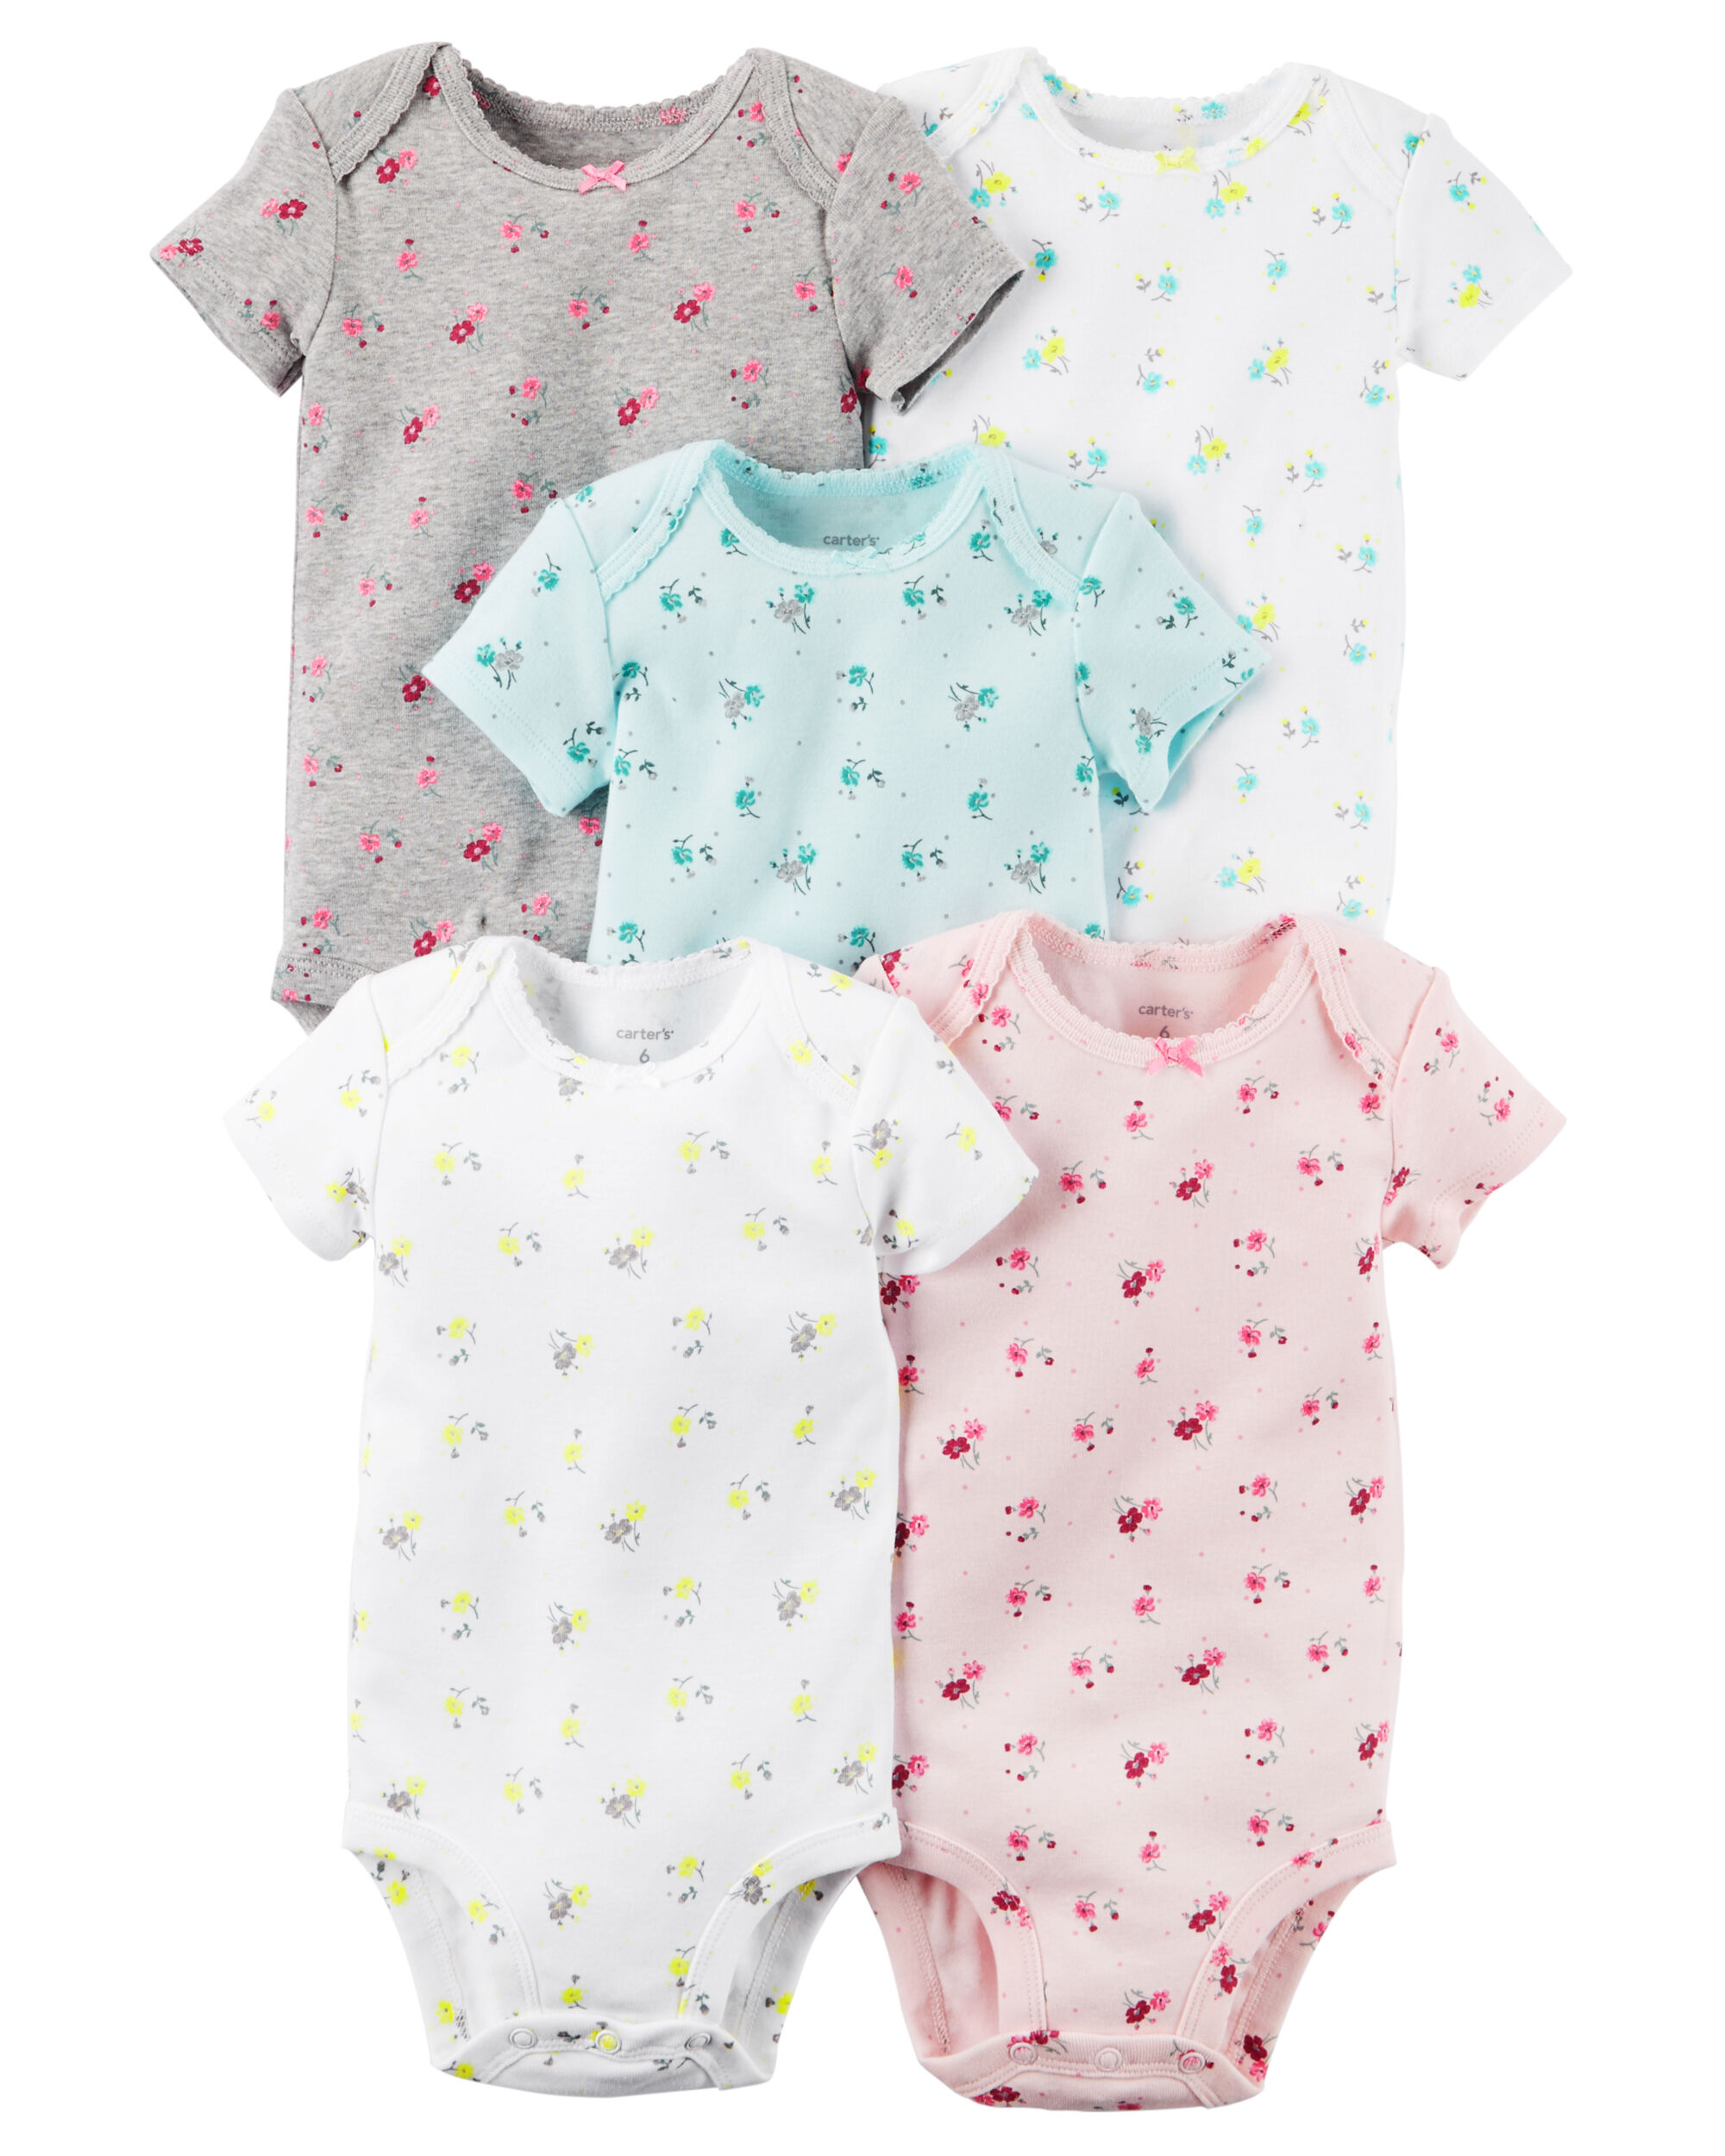 5-Pack Short-Sleeve Bodysuits | Carters.com